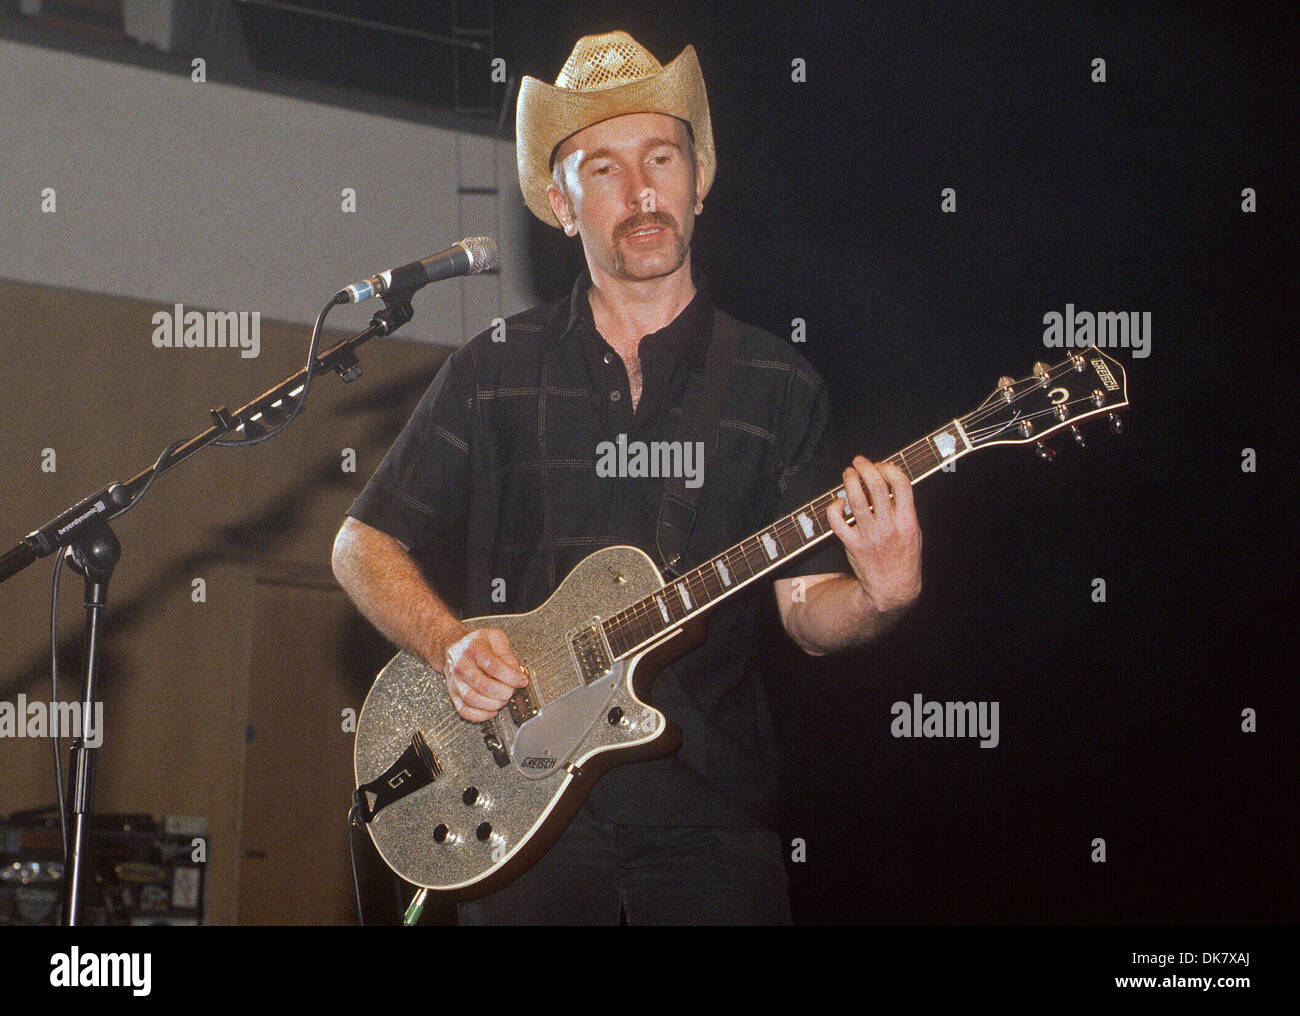 David Howell Evans, more widely known by his stage name The Edge, is a musician best known as guitarist, backing - Stock Image